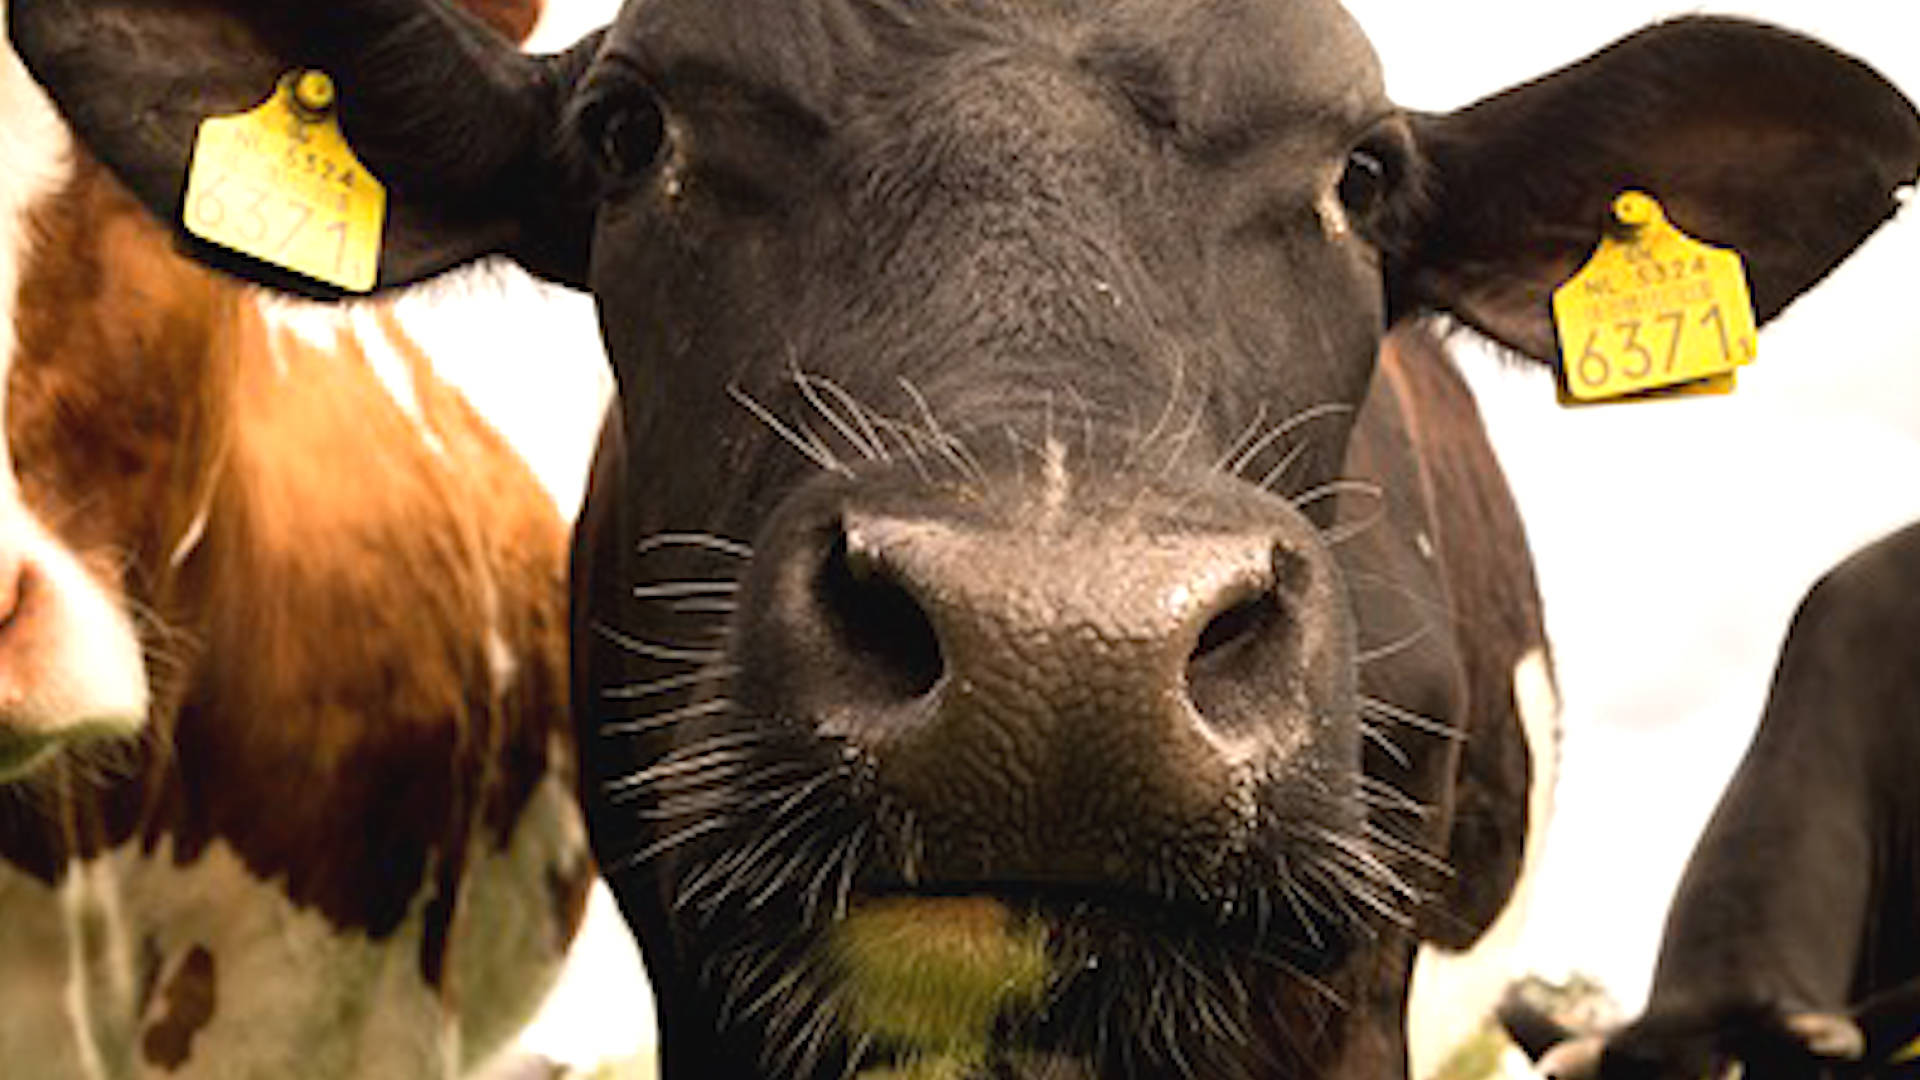 George Monbiot: Ending Meat & Dairy Consumption Is Needed to Prevent Worst Impacts of Climate Change